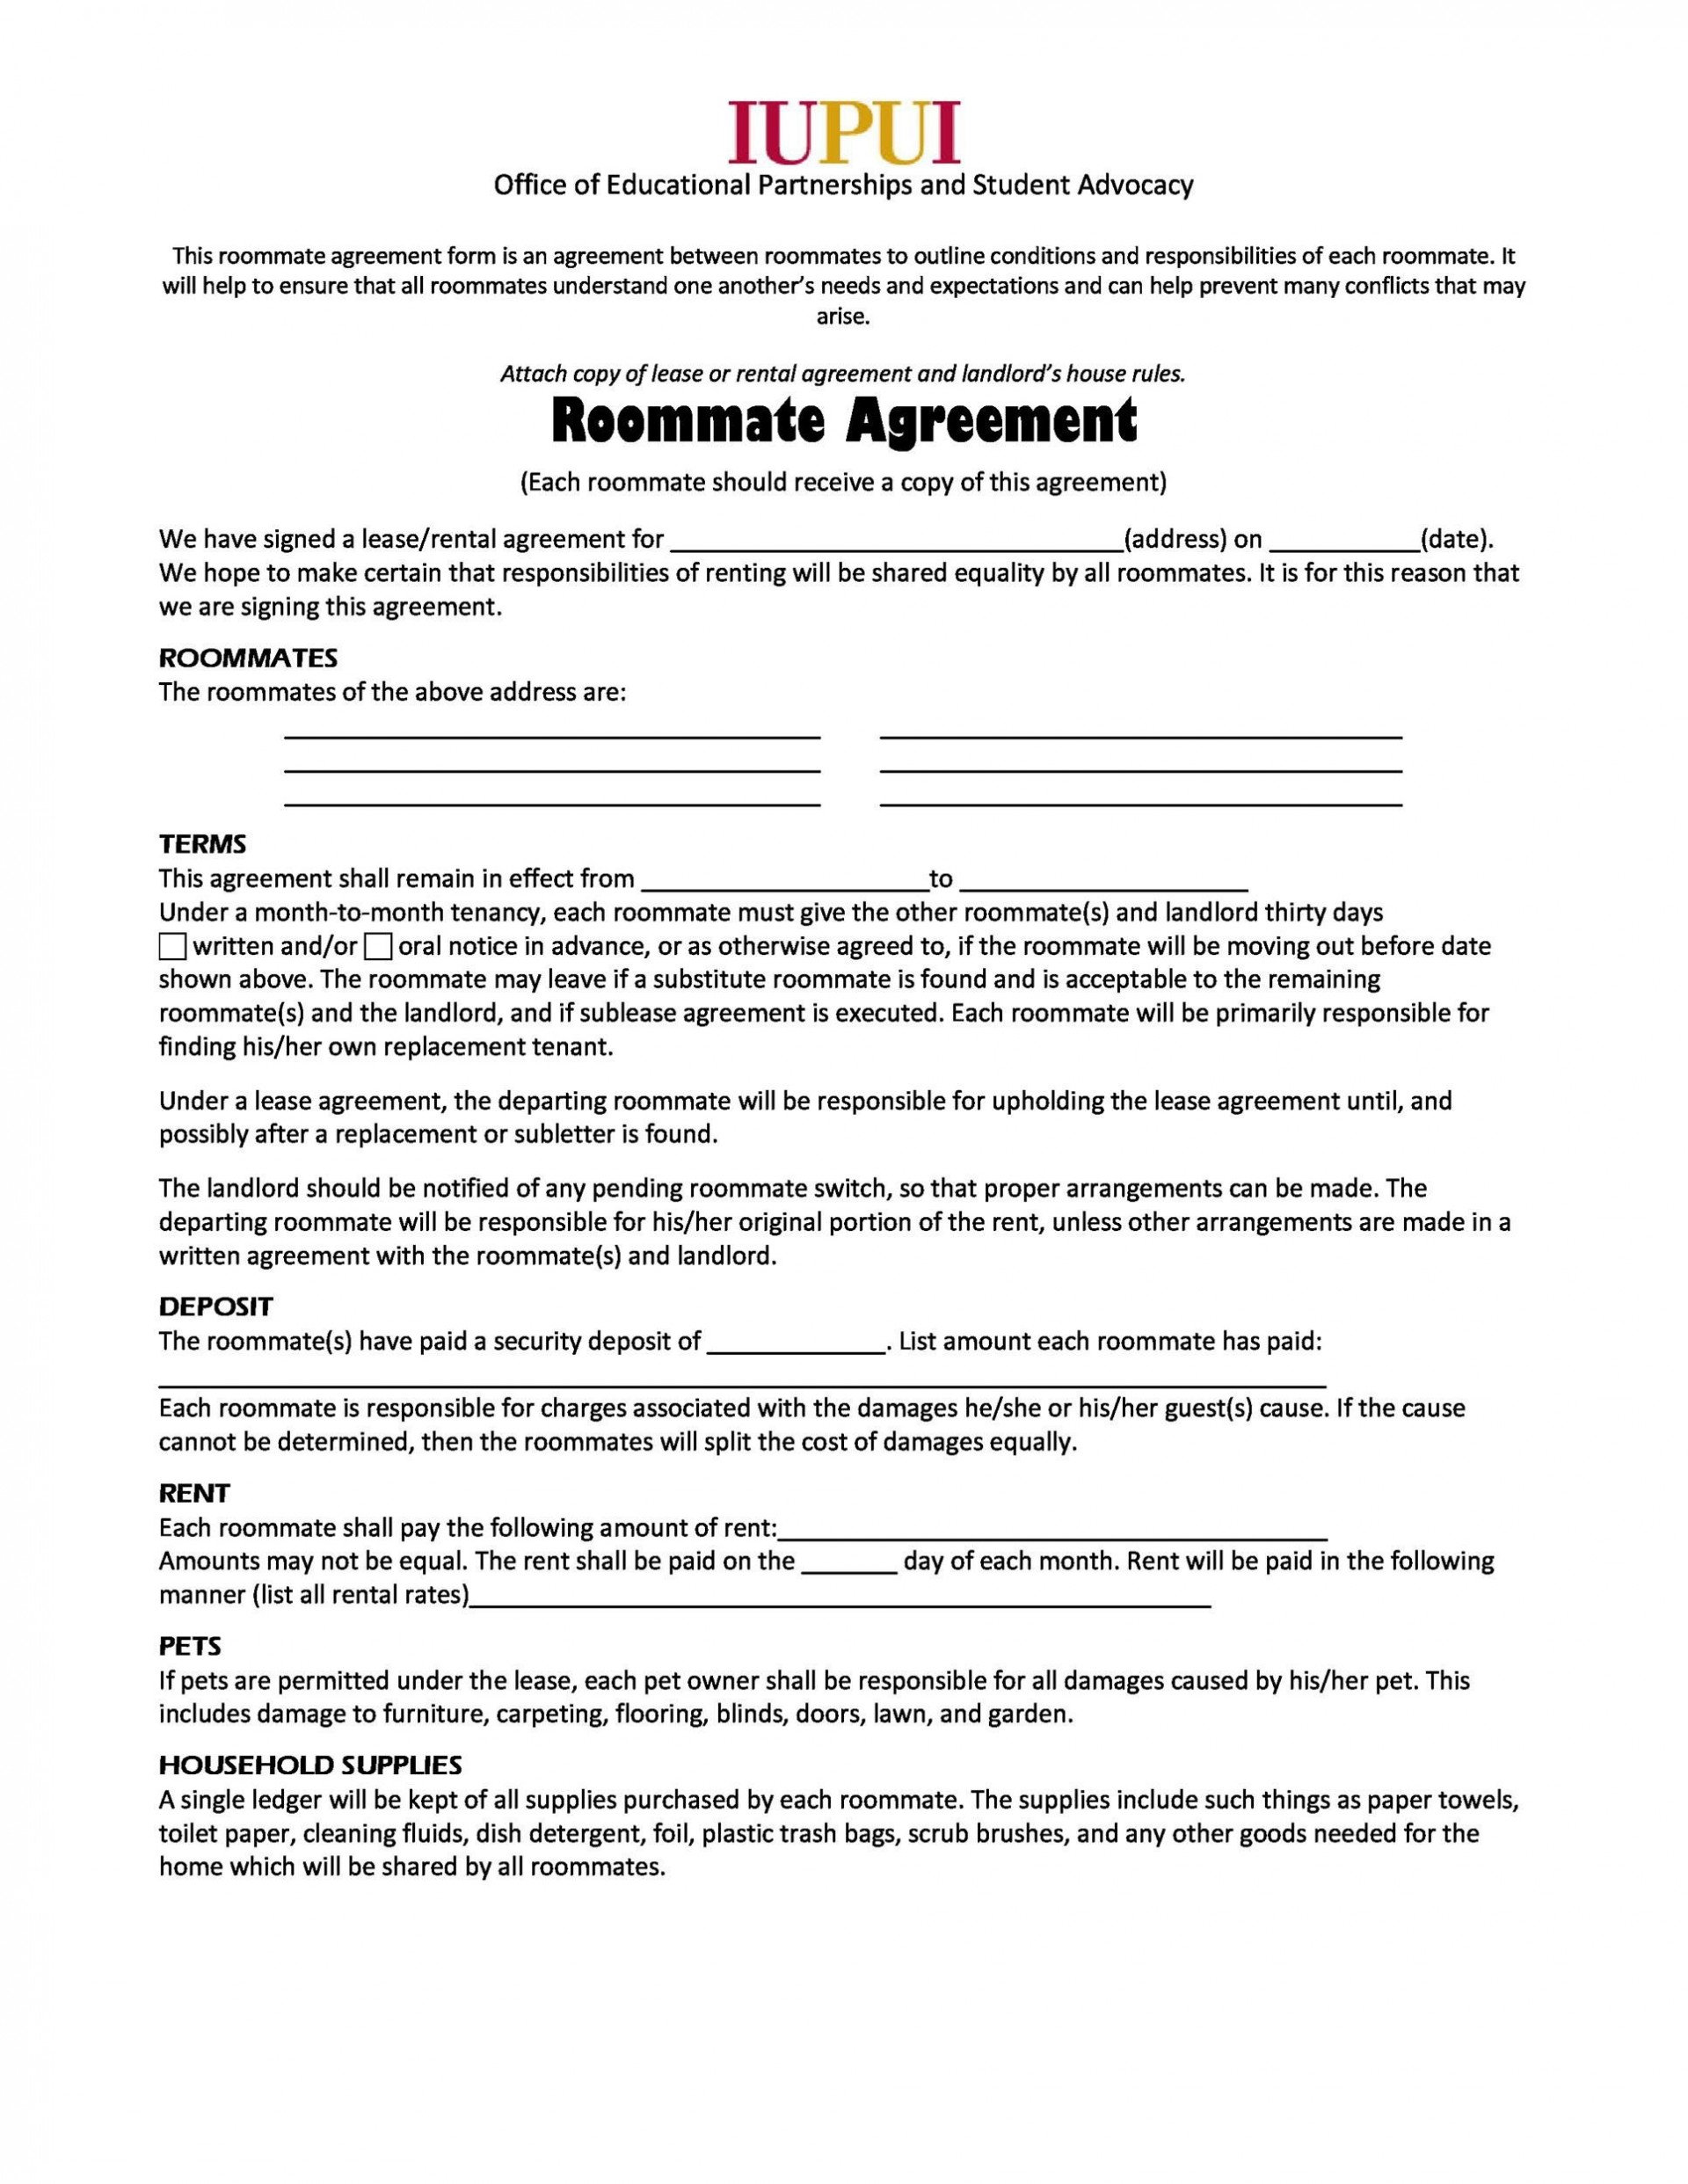 008 Rare Roommate Rental Agreement Template Inspiration  Form Free Contract1920